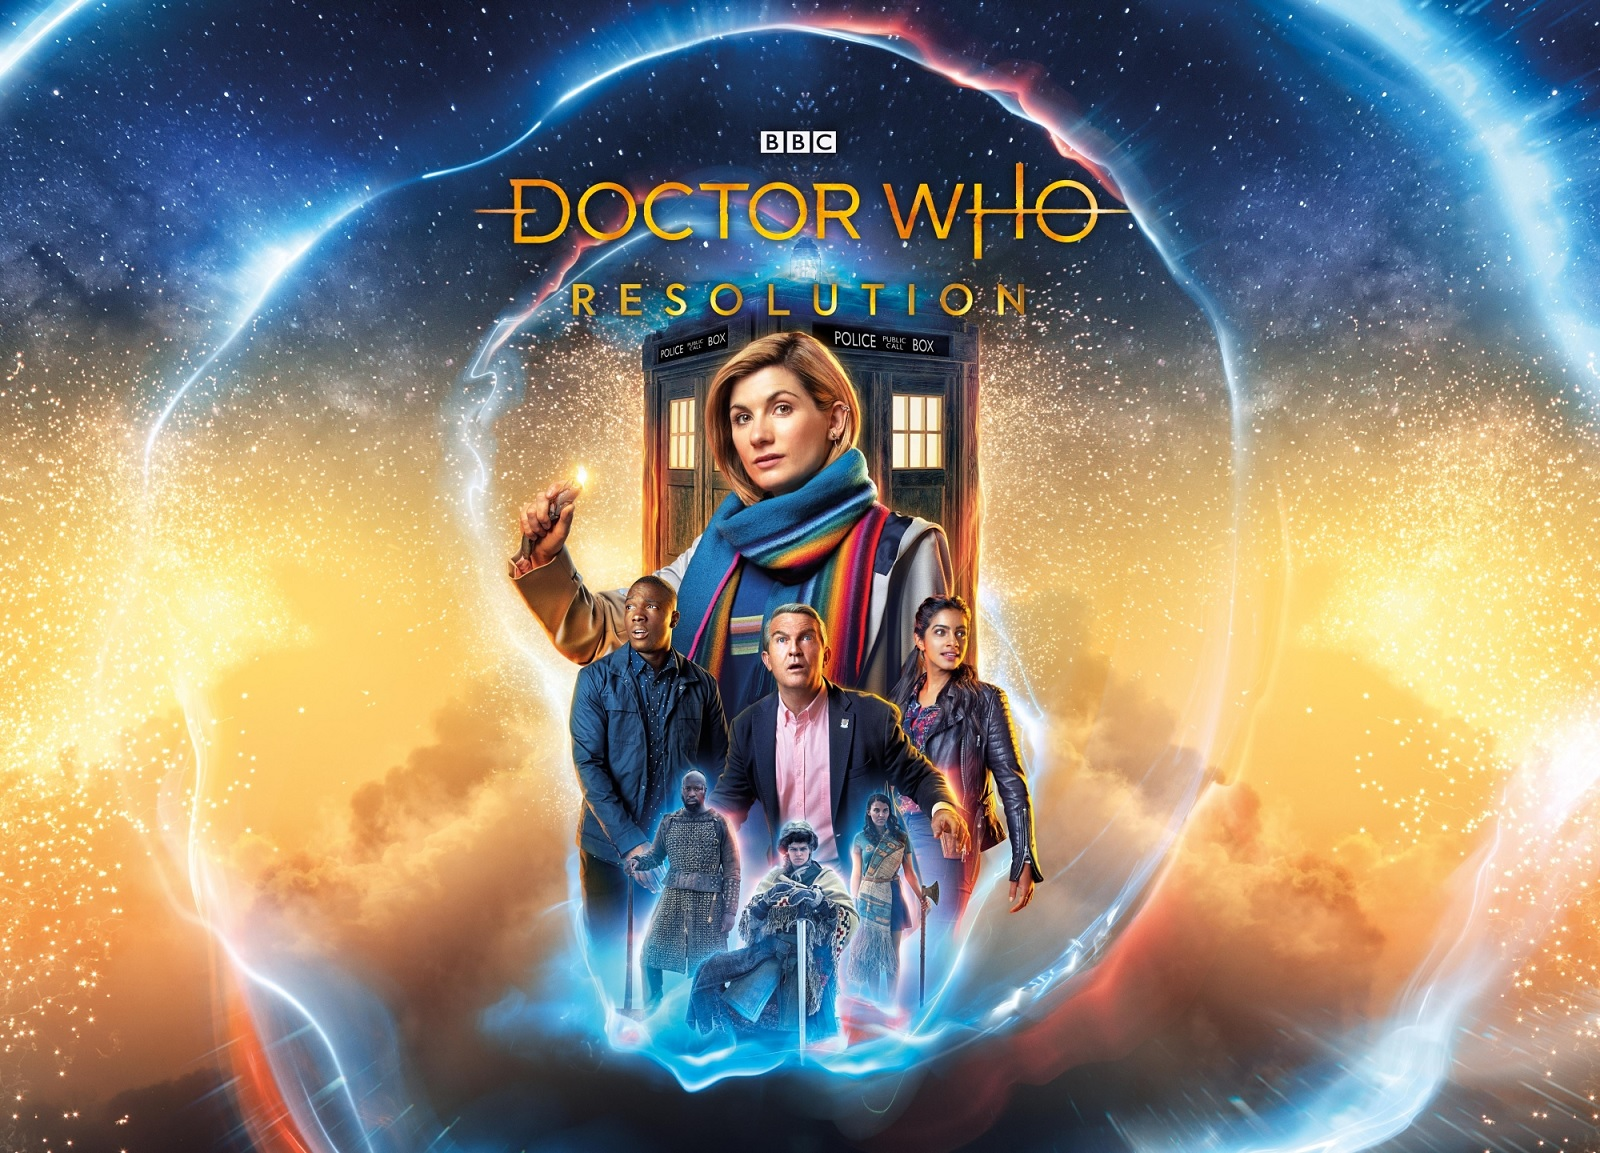 New Image Gallery for Doctor Who: Resolution – The Doctor ...  New Image Galle...